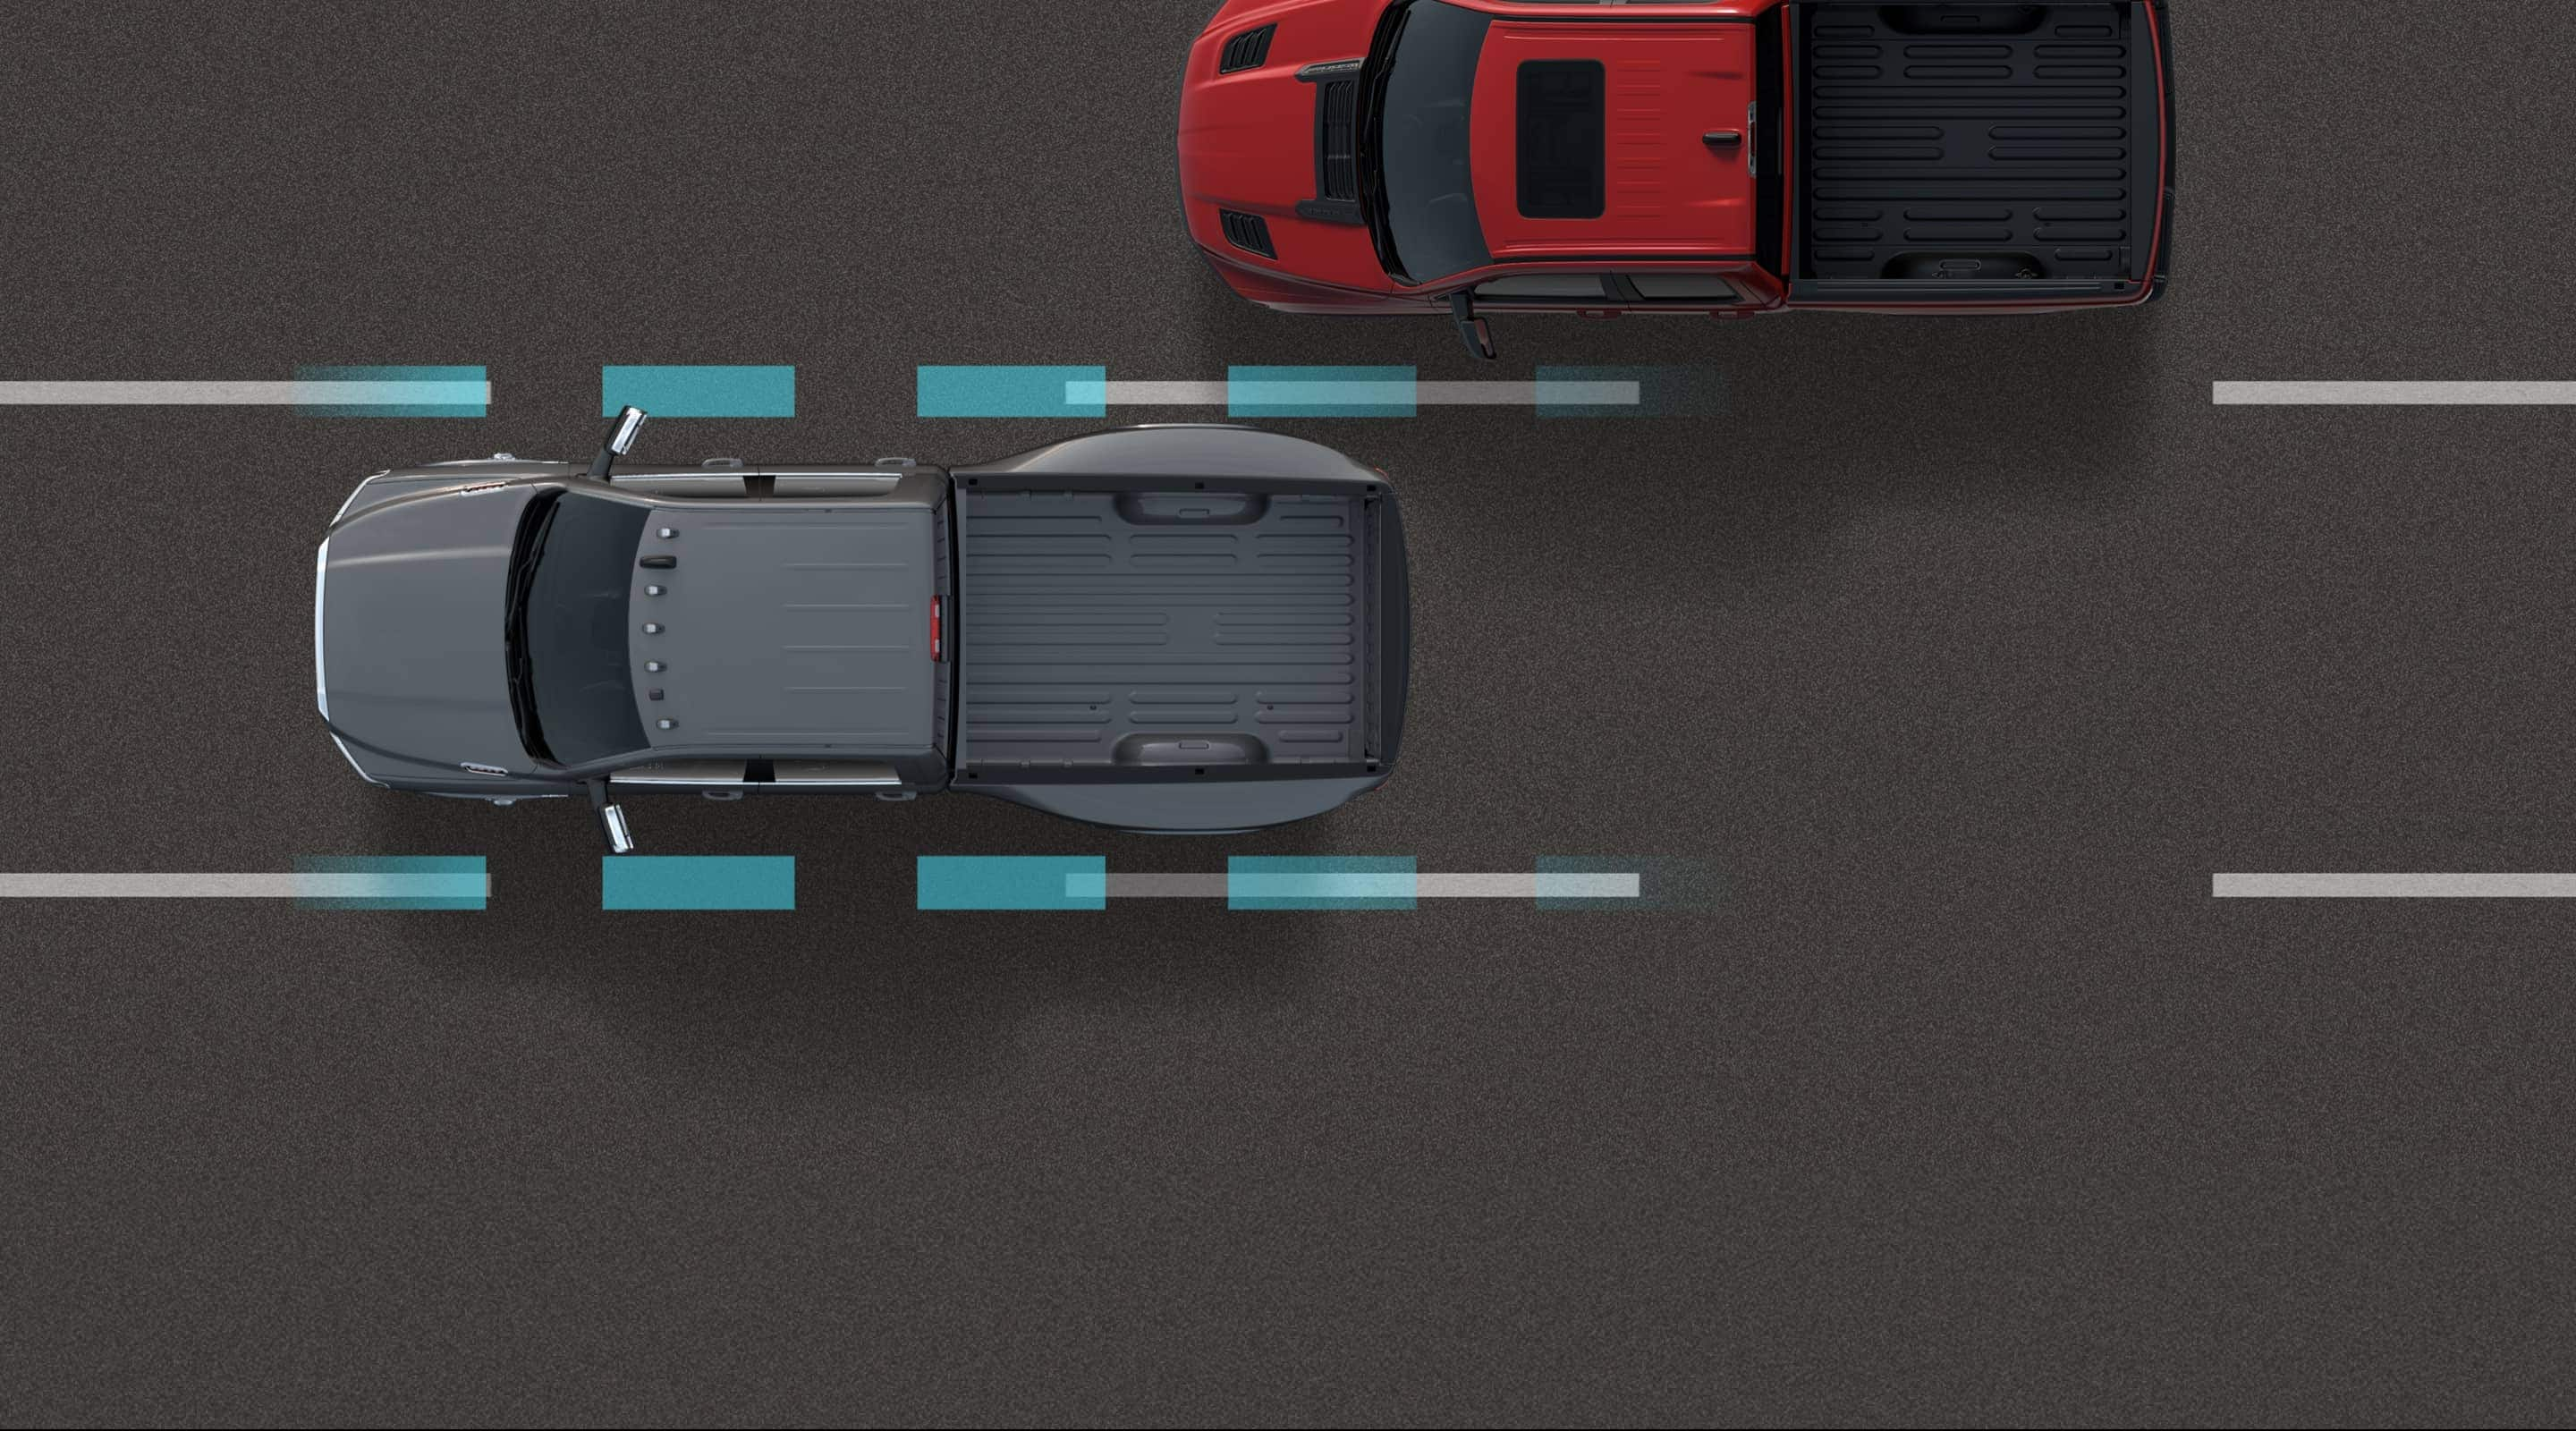 Illustration of the sensors in the 2020 Ram 3500 recognizing the lane markers on the road under the vehicle.